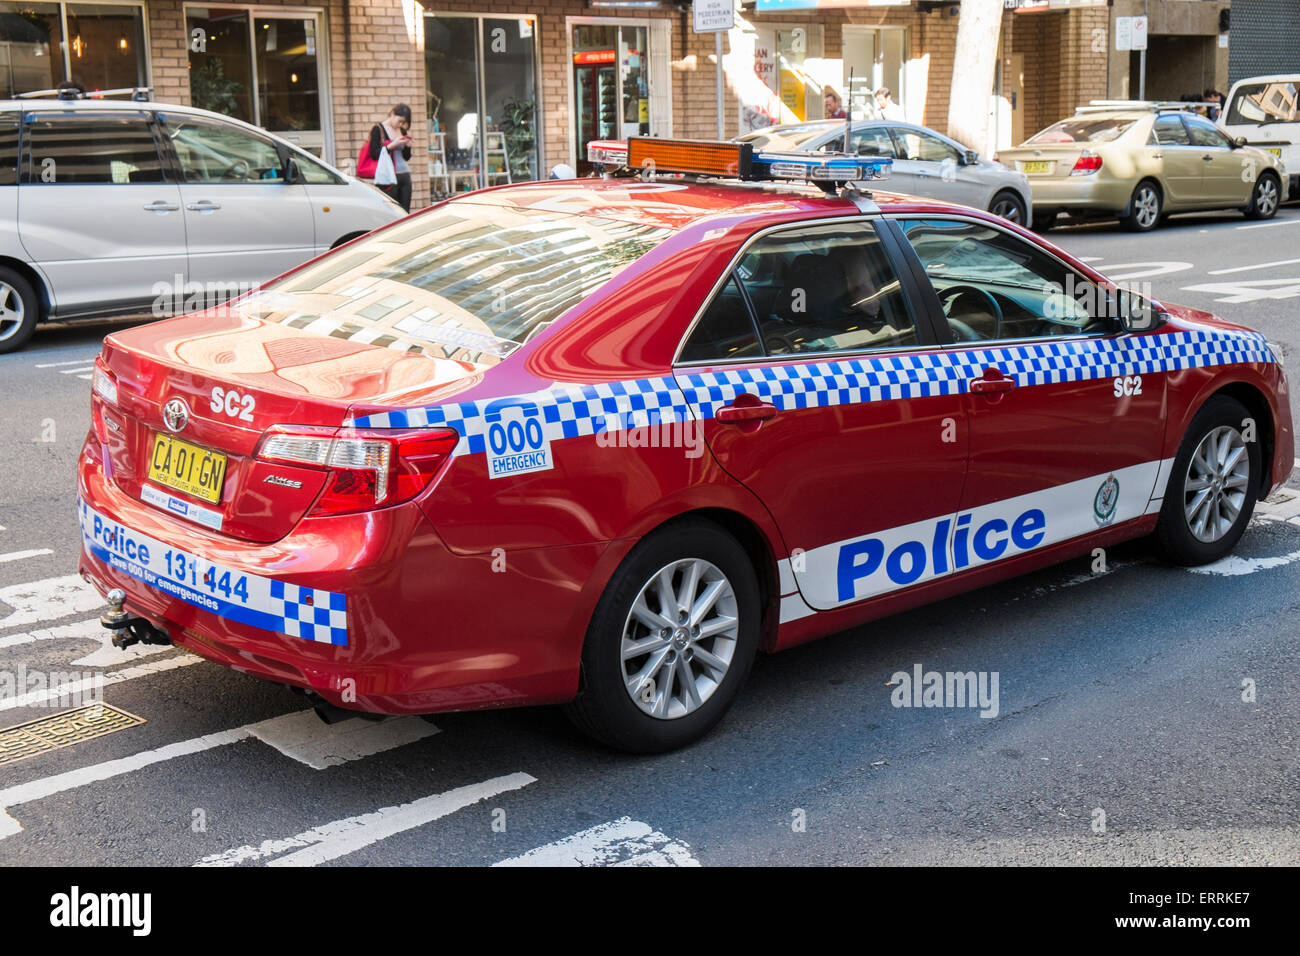 Police Officer In Sydney Driving A Red/maroon Toyota Police Car ,sydney,australia